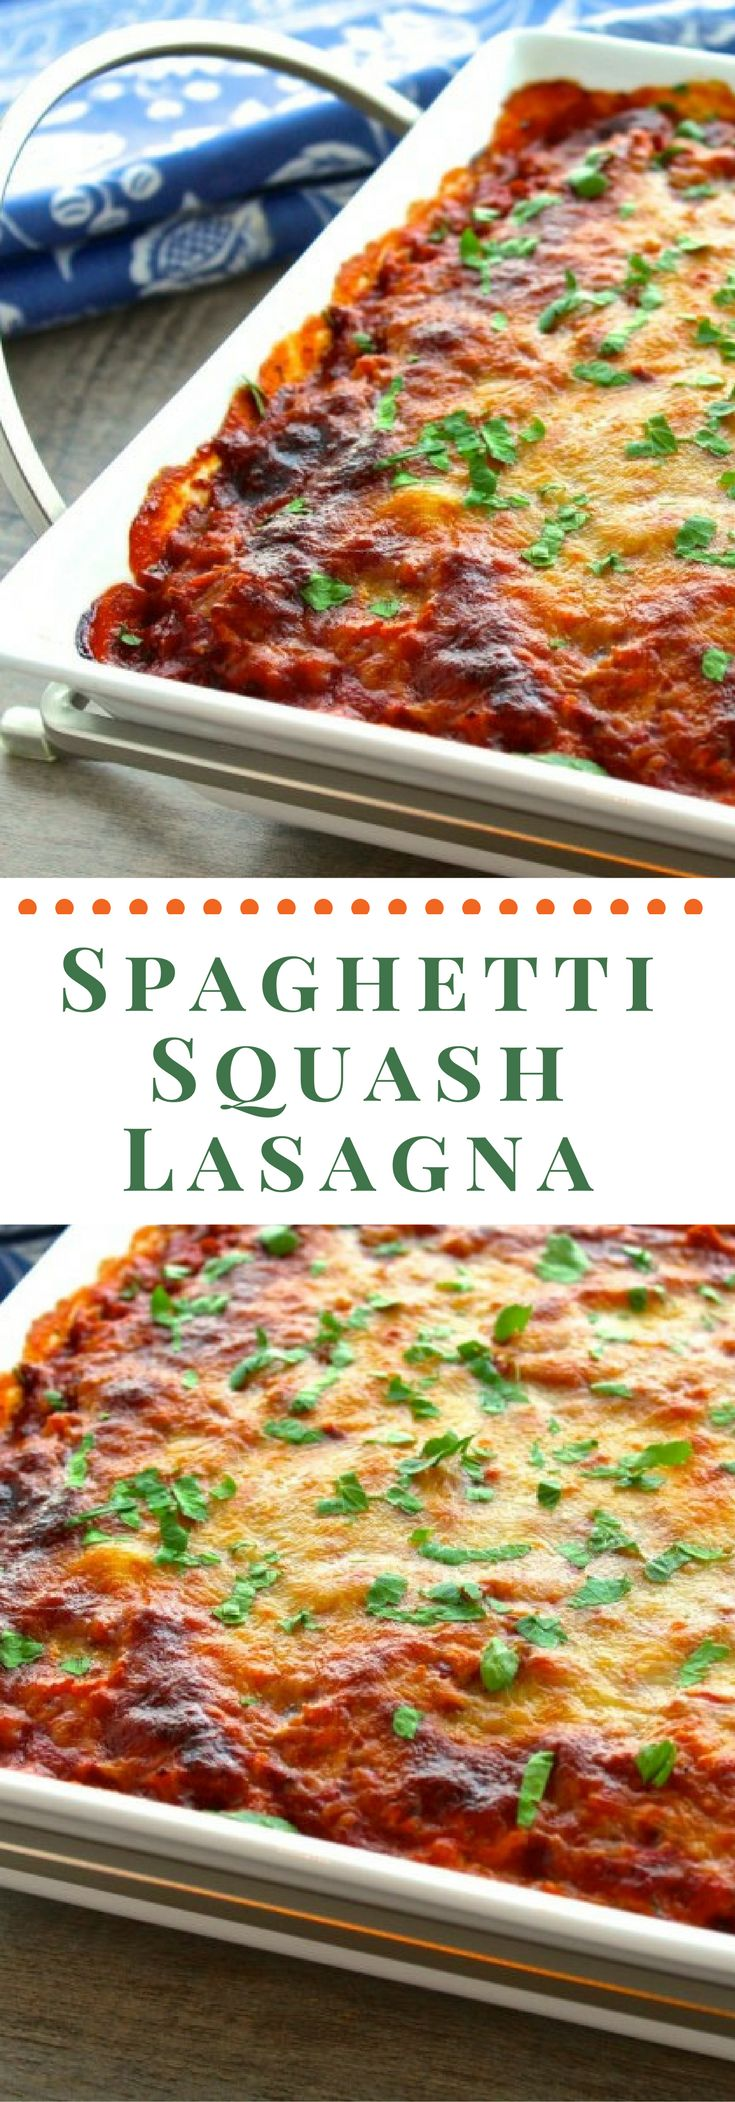 Spaghetti Squash Lasagne. Healthy, easy, with tips for how to cook a spaghetti squash.